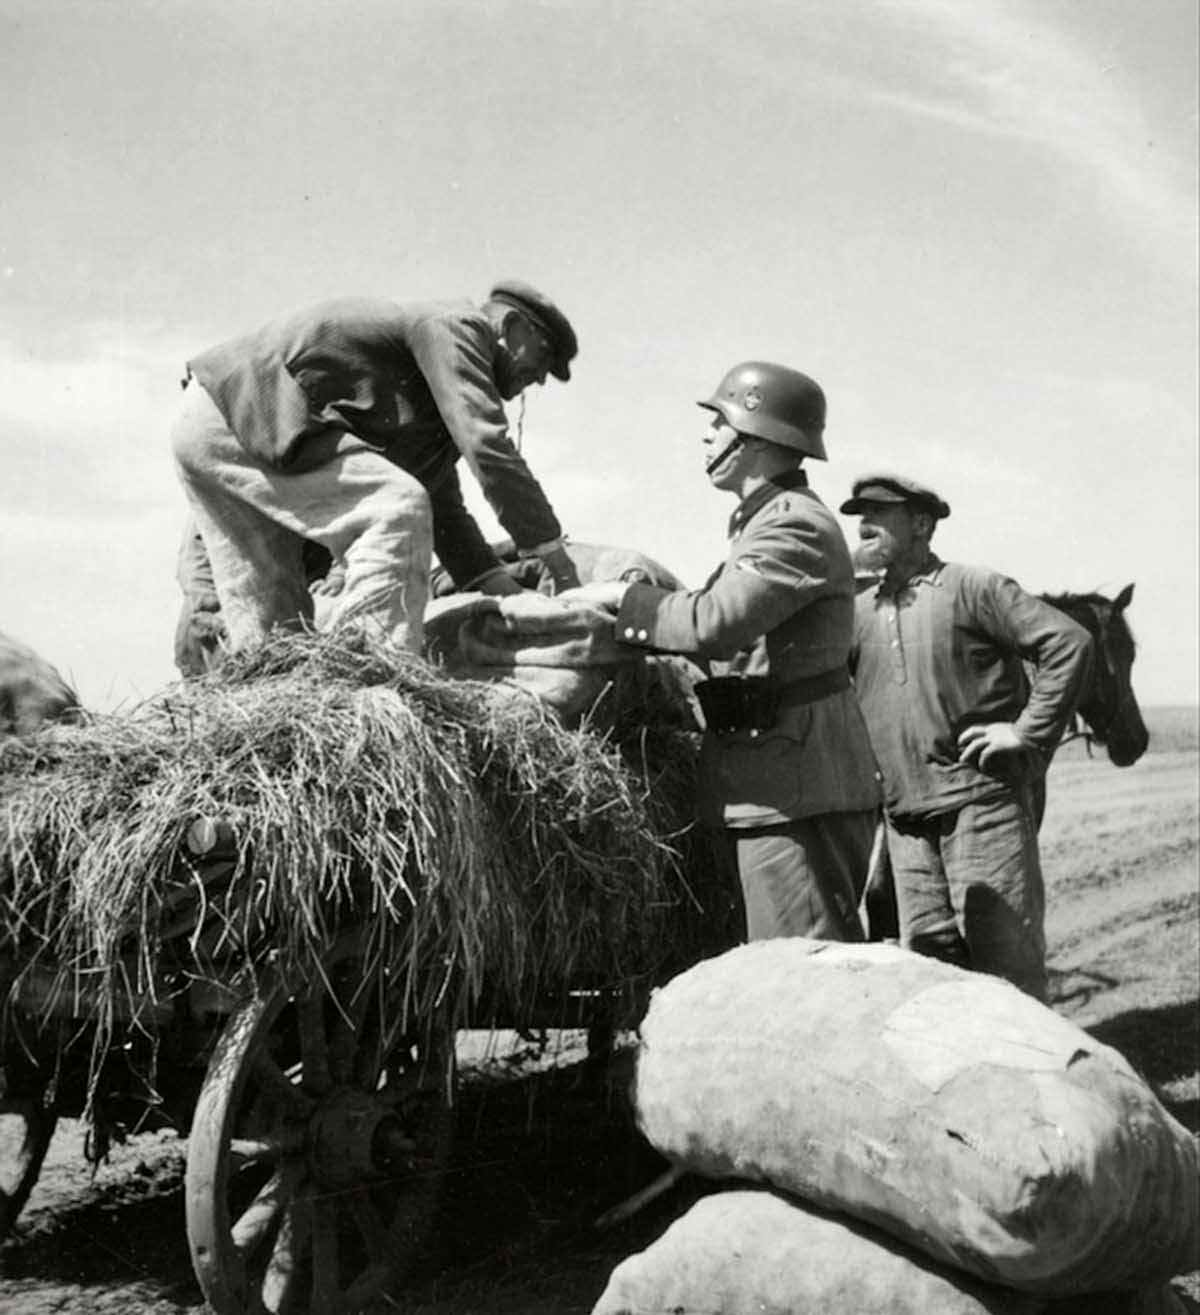 A German soldier bargaining with a farmer (or maybe confiscating it).